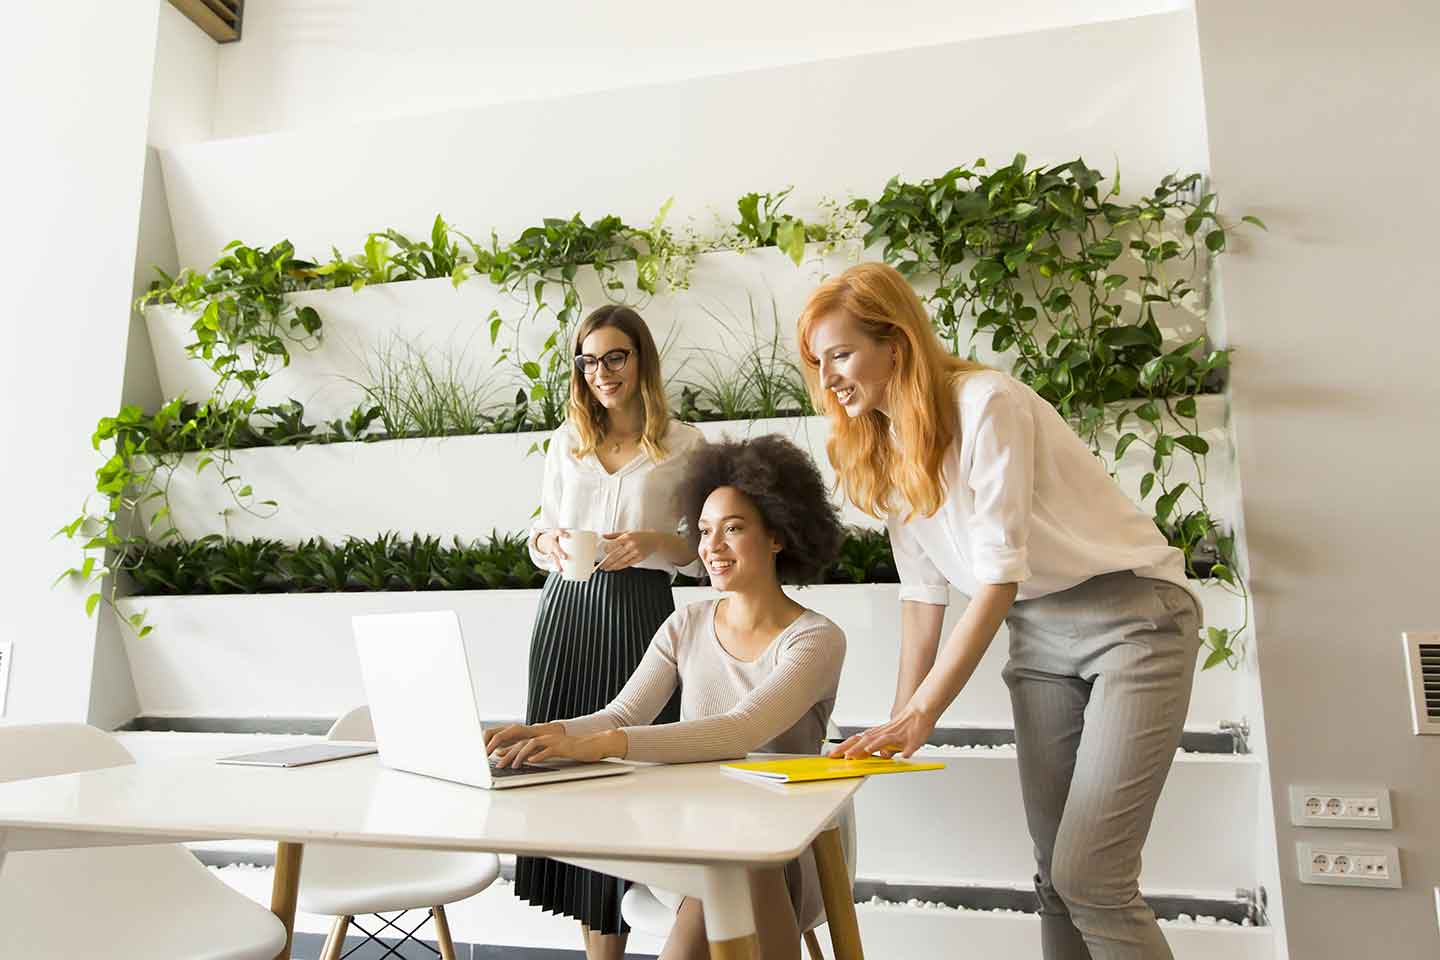 Group of three female entrepreneurs brainstorming sustainable business practices in an eco-friendly office.